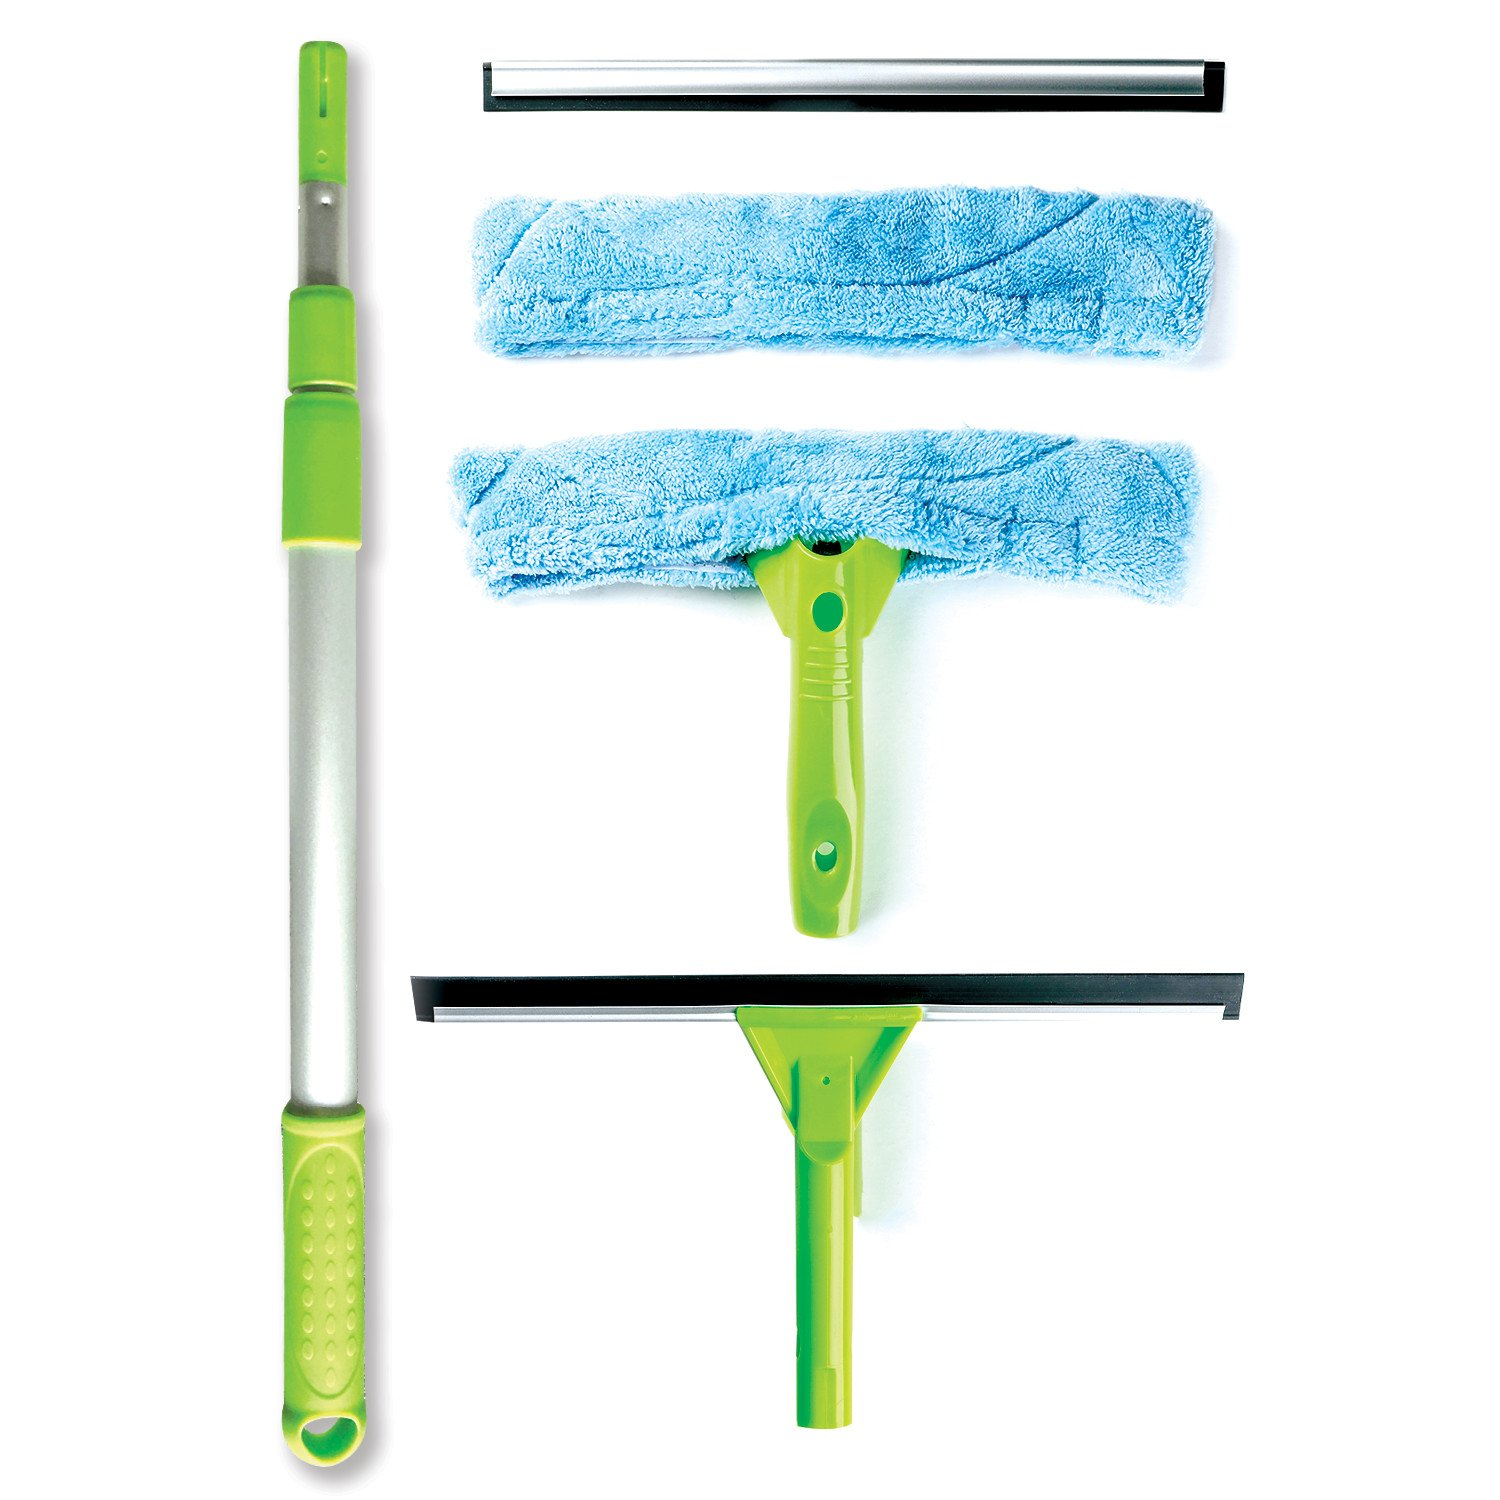 Telescopic Window Cleaning Kit with Super Squeegee, Light Weight, All-In-One 5 Piece Set - Microfiber Glass Washer (2), Soft Rubber Strip (2) and 3- Section Aluminum Extension Pole, Best for Windows